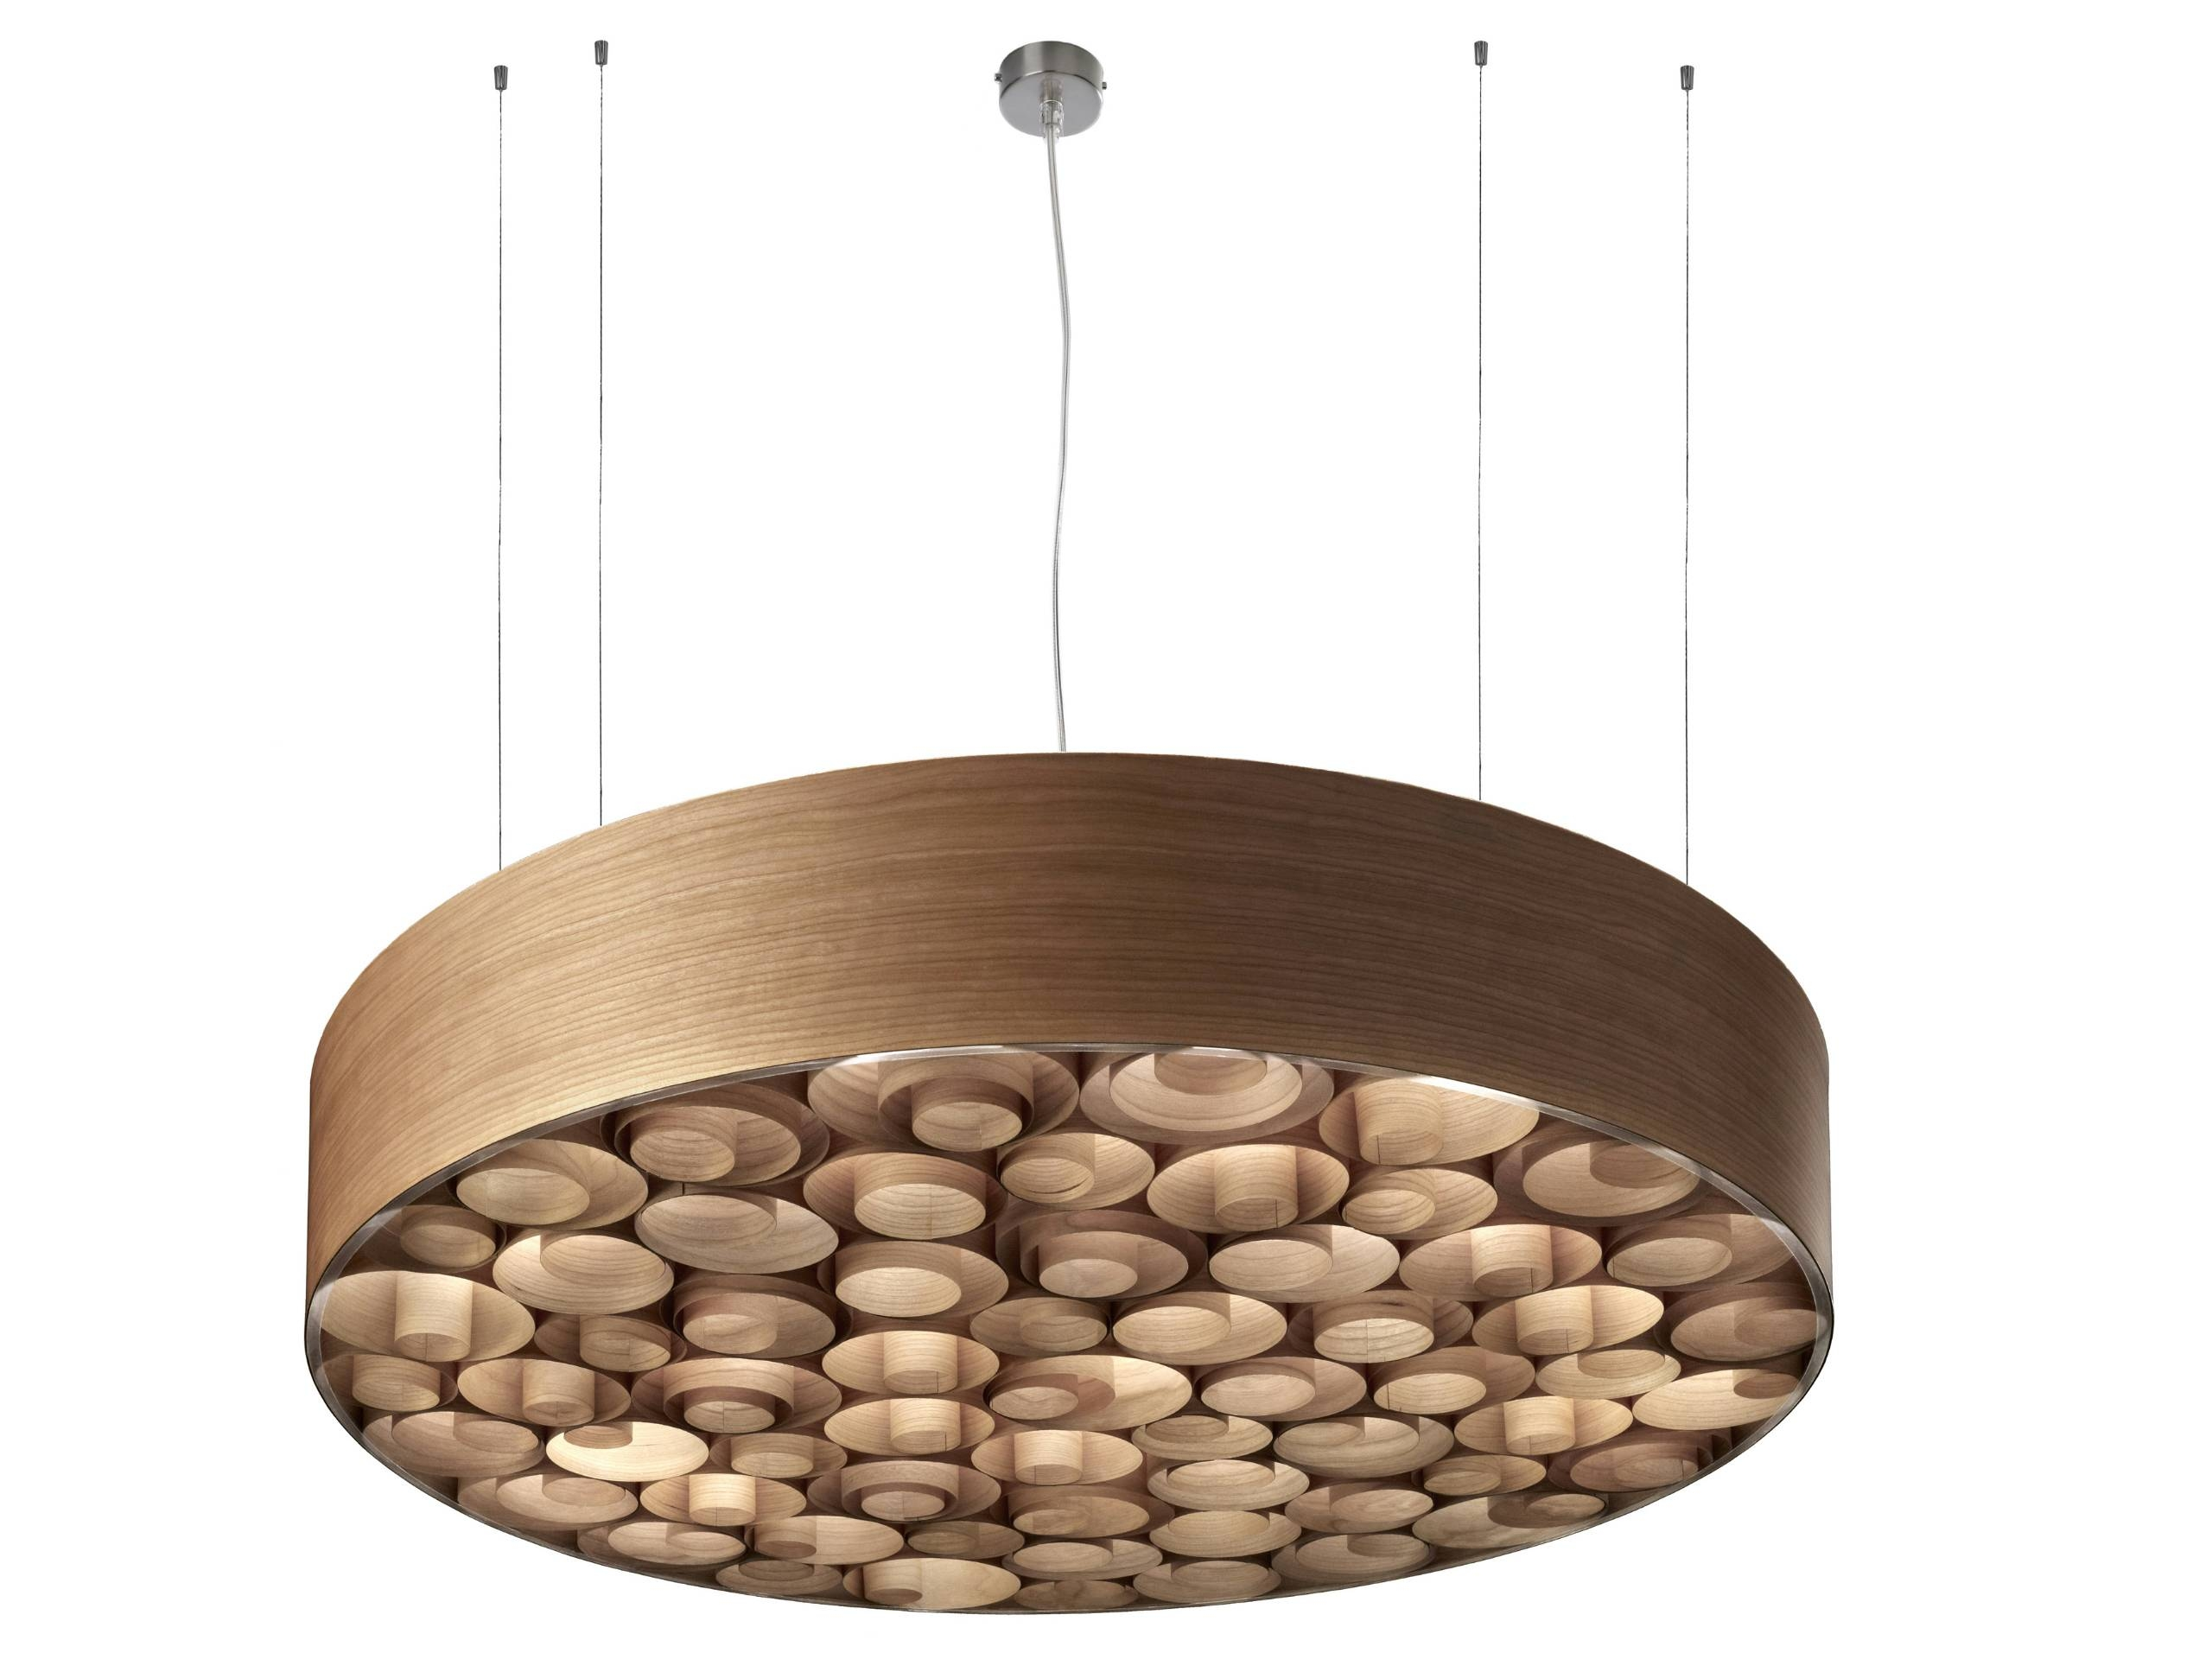 Best Fresh Diy Wood Veneer Pendant Light #9969 in Wood Veneer Pendants (Image 2 of 15)